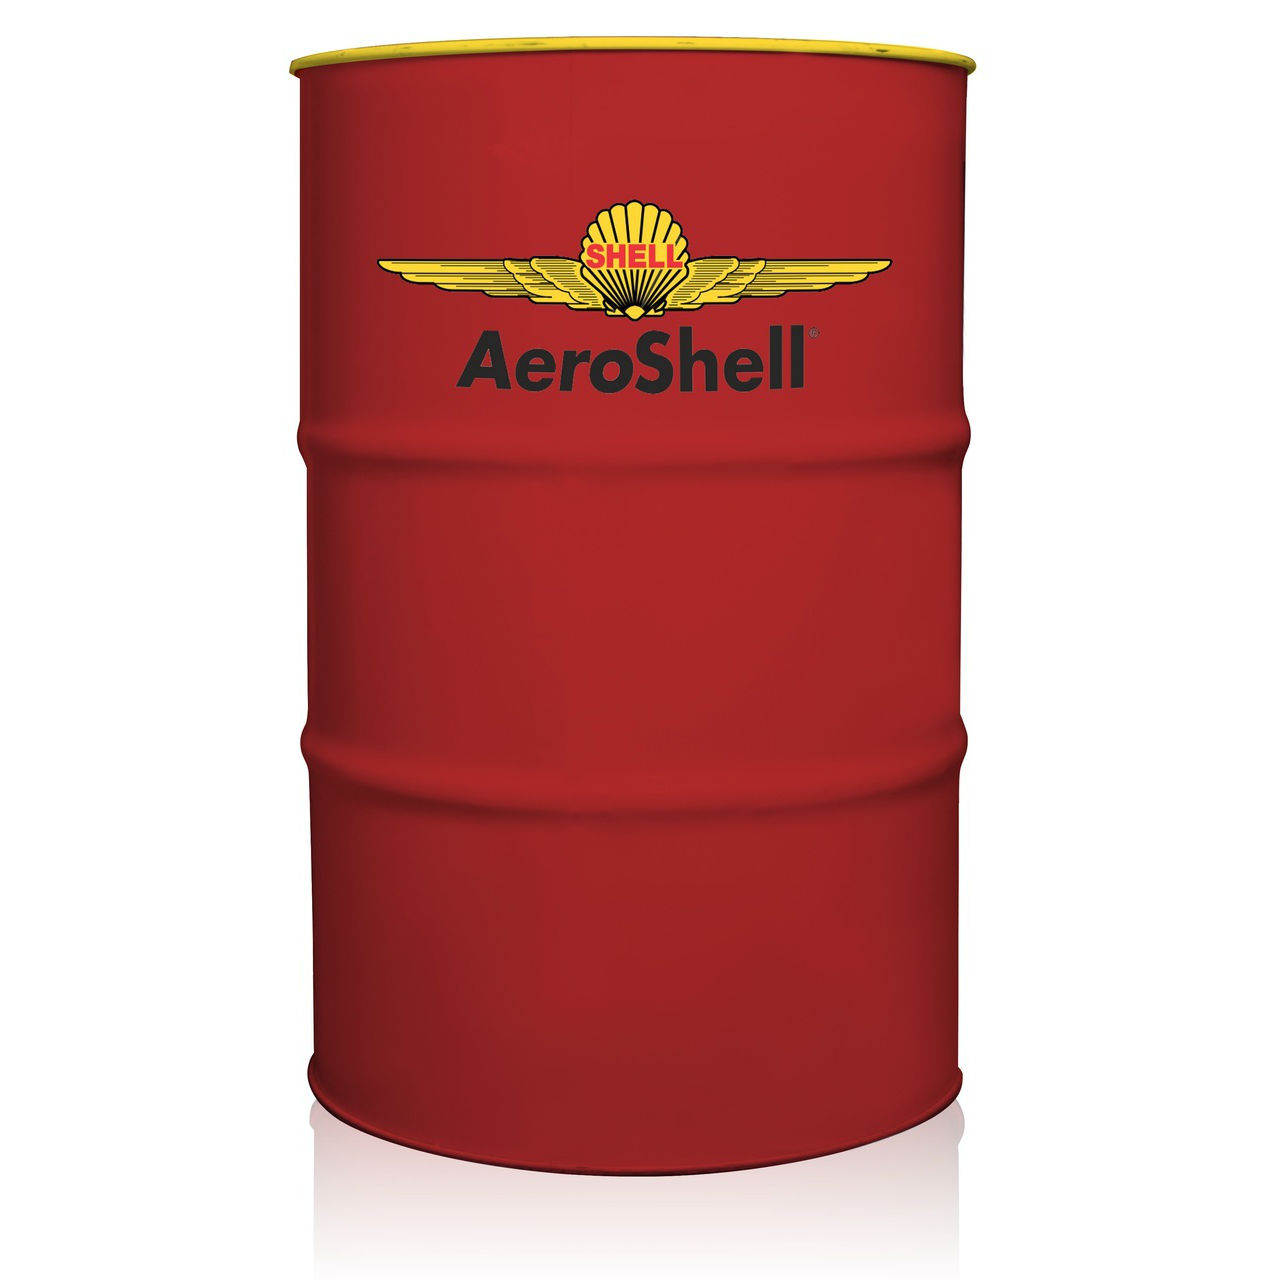 AeroShell Turbine Oil 500 - 55 Gallon Drum